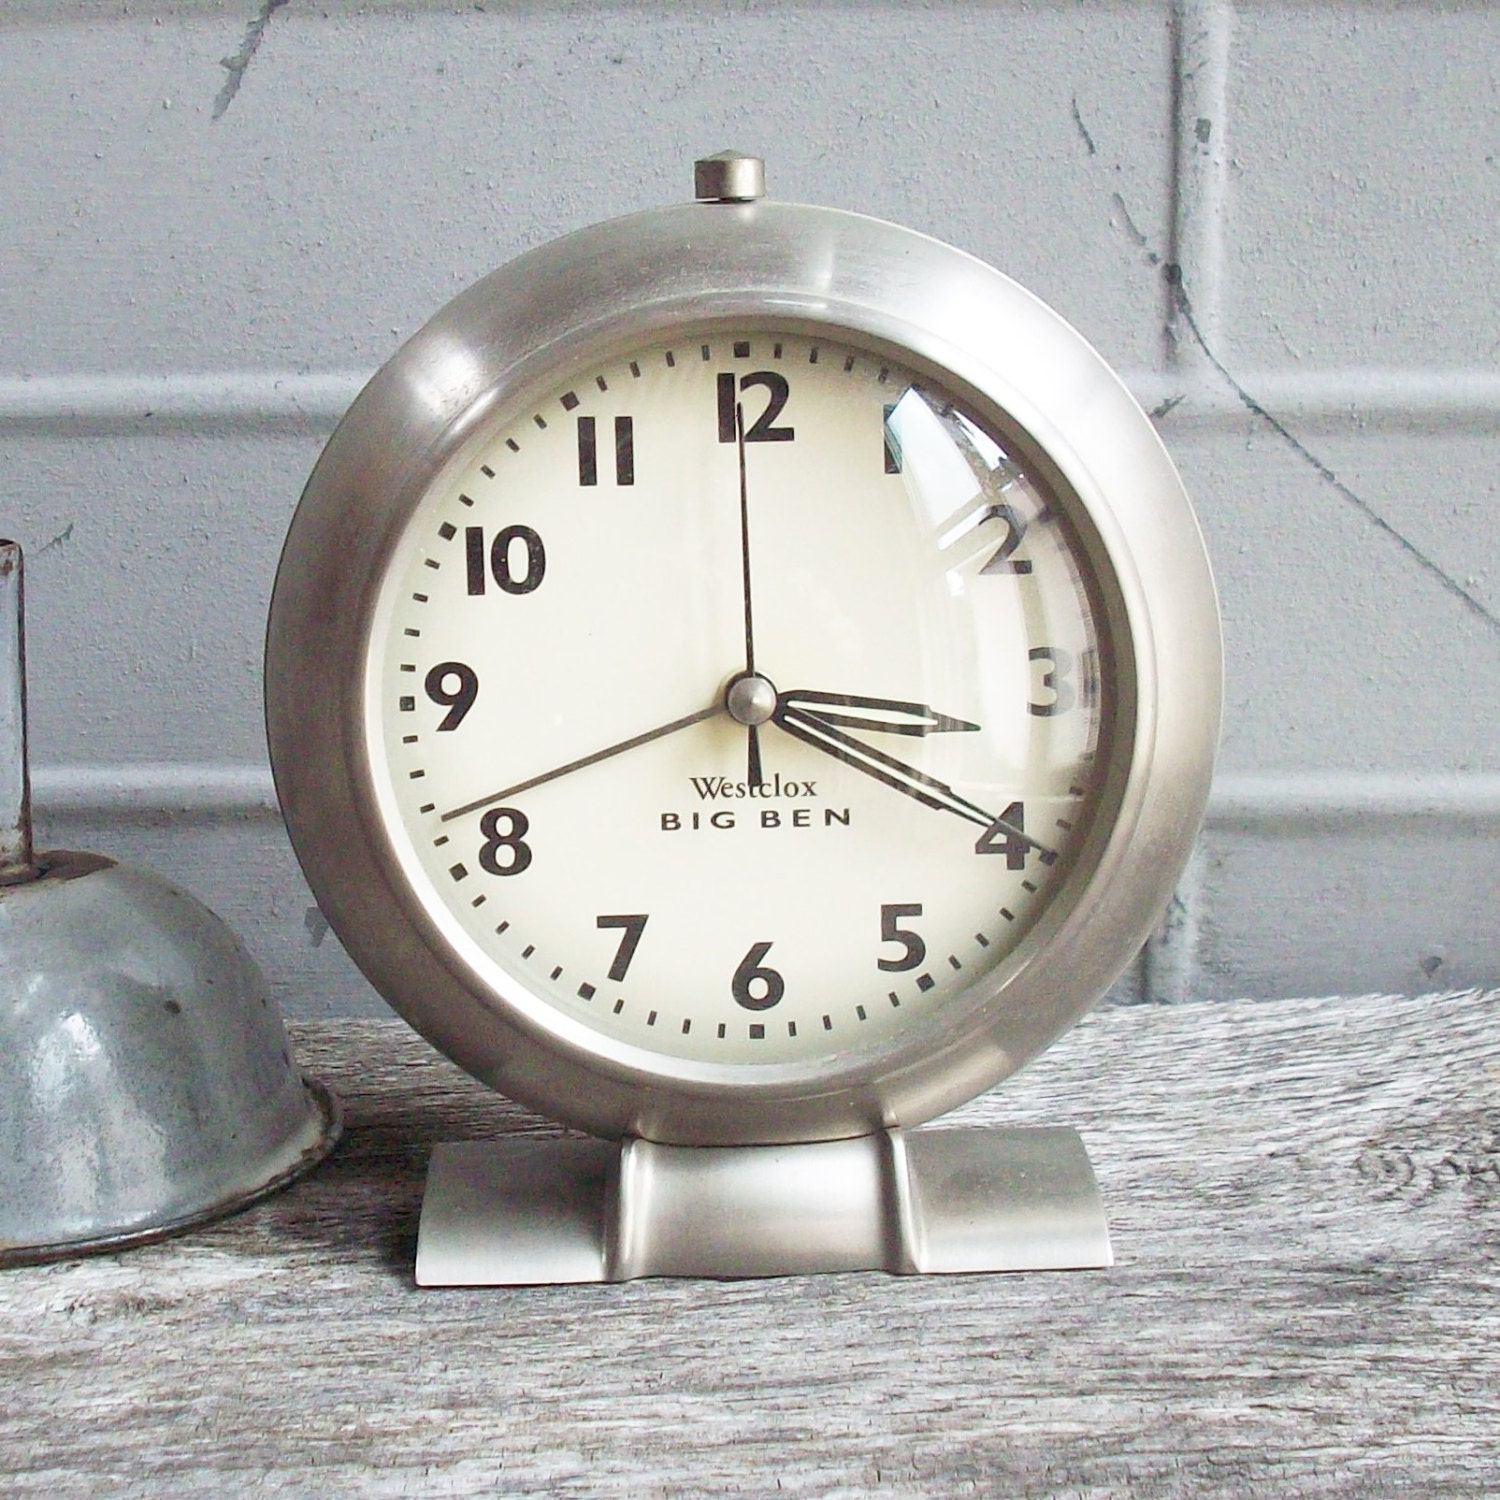 Vintage reproduction of and antique alarm clock art deco Art deco alarm clocks